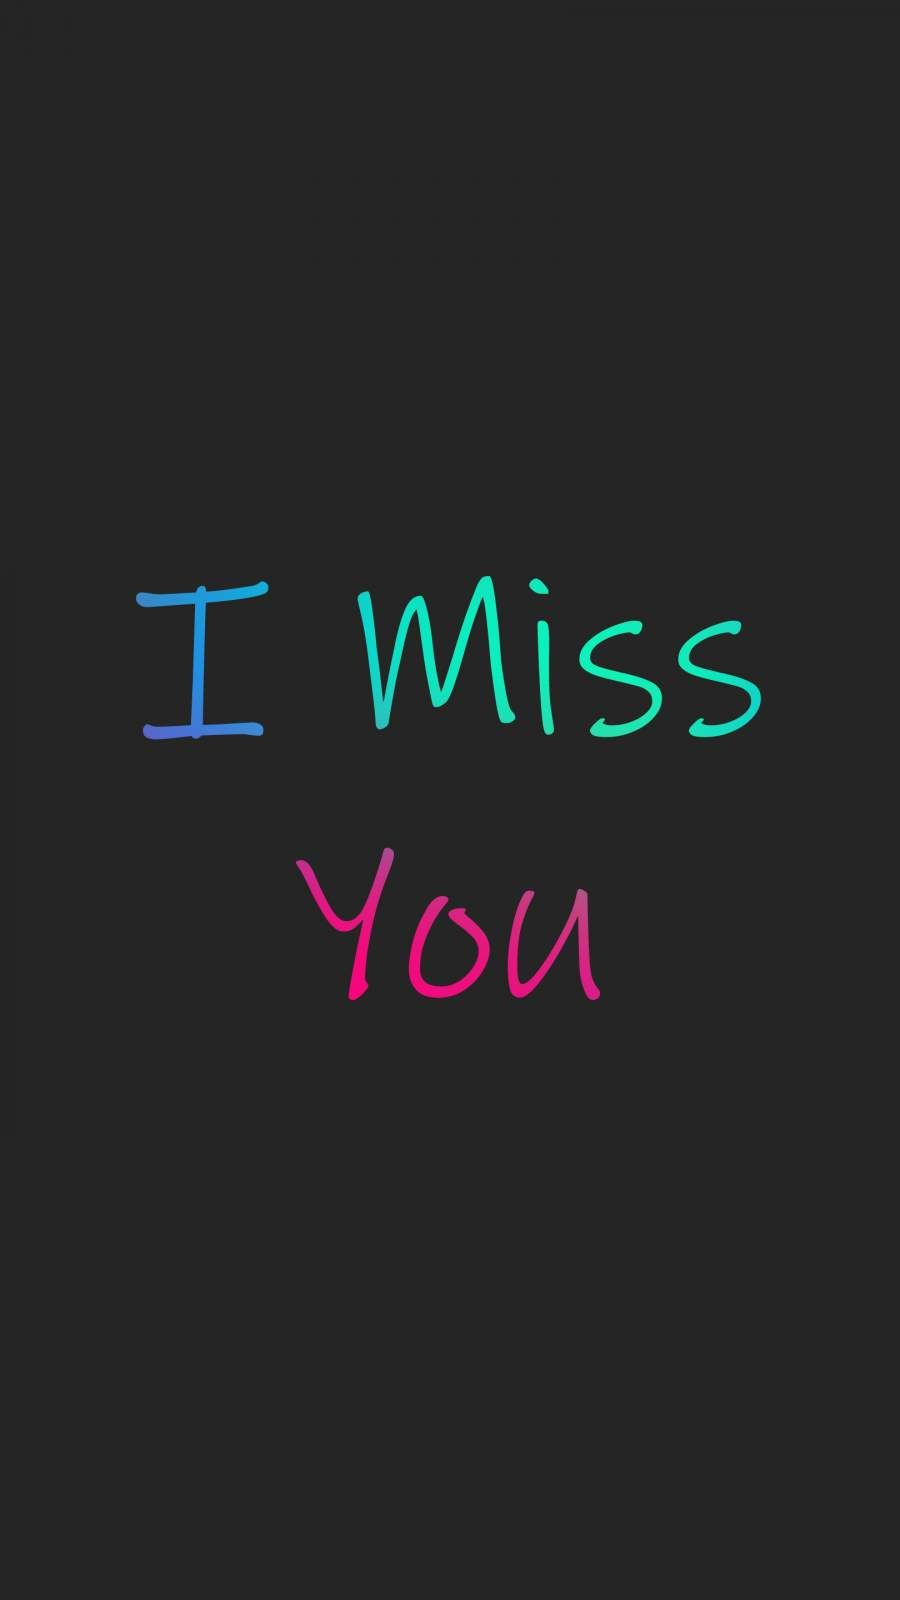 I Miss You Iphone Wallpaper I Miss You Wallpaper Iphone